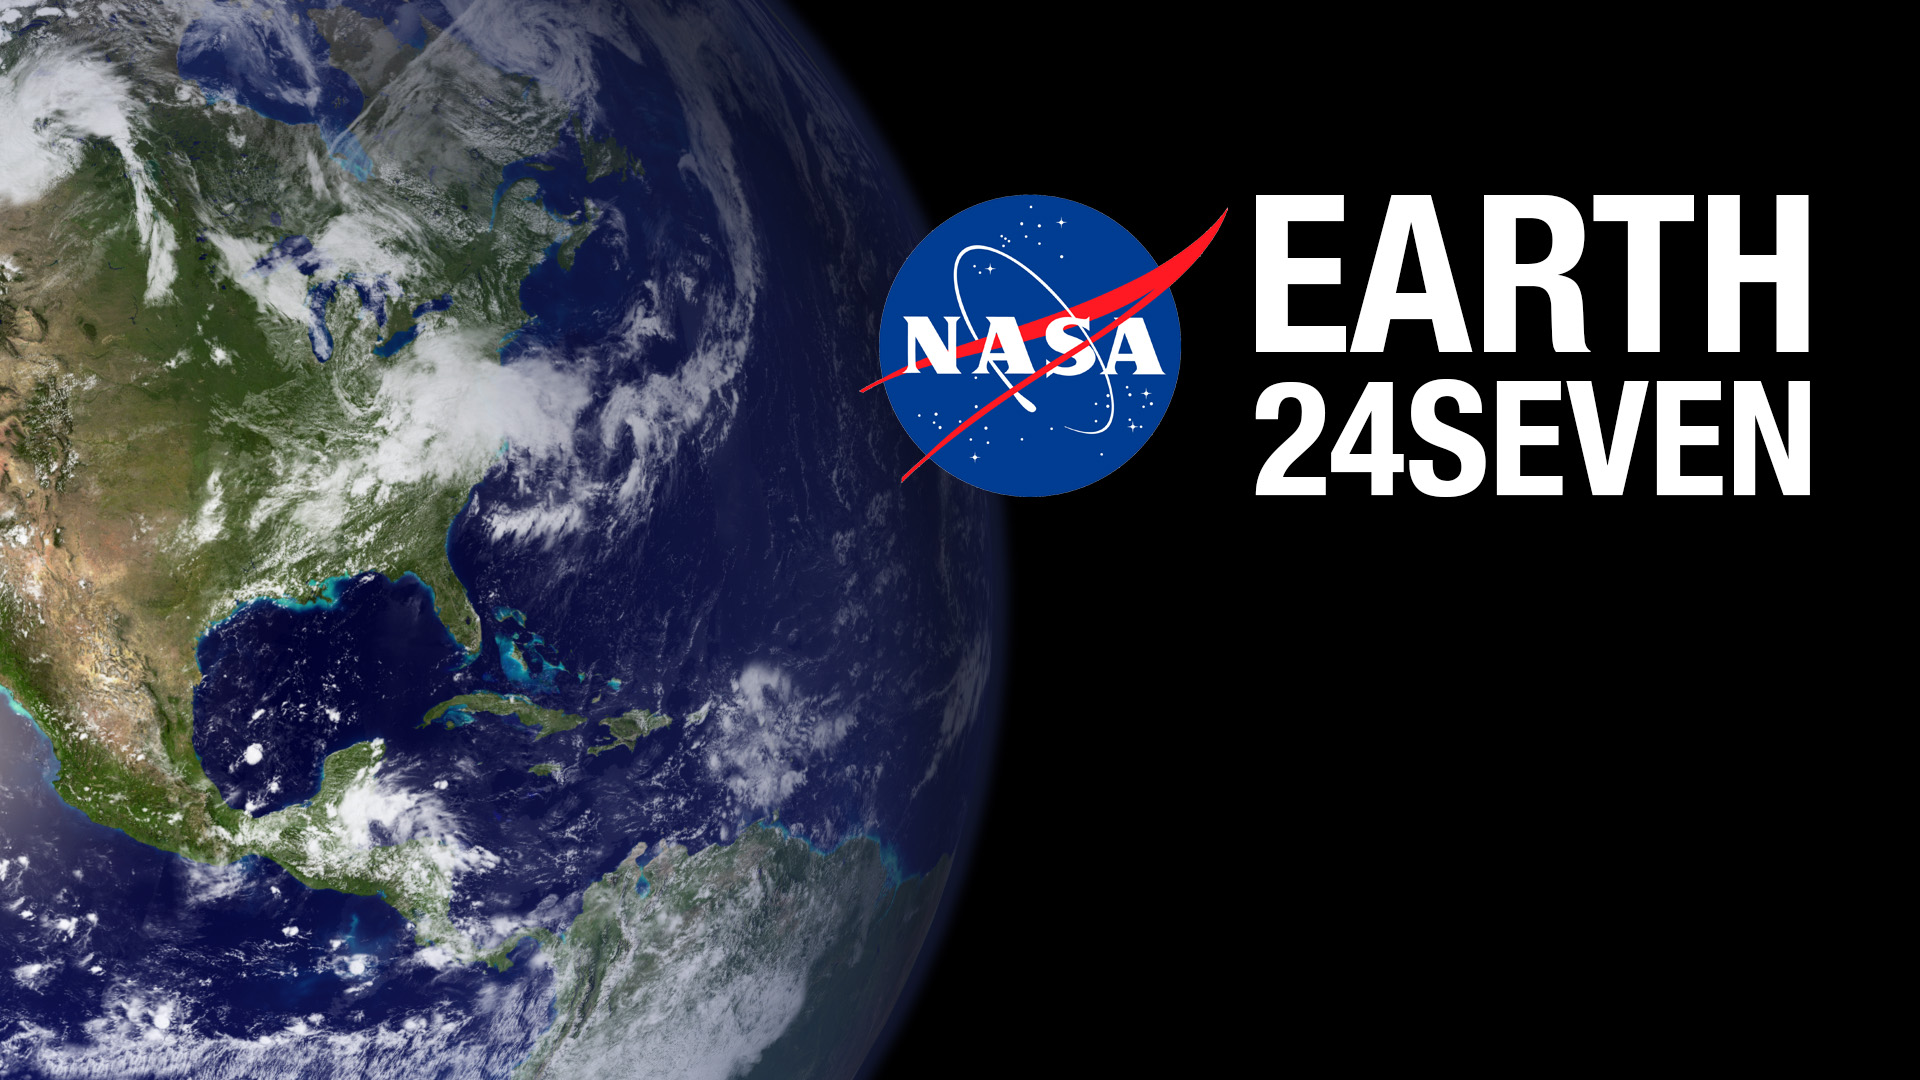 NASA is celebrating Earth Day 2016 with the #24Seven campaign to show how it studies Earth, and to collect photos from the public.